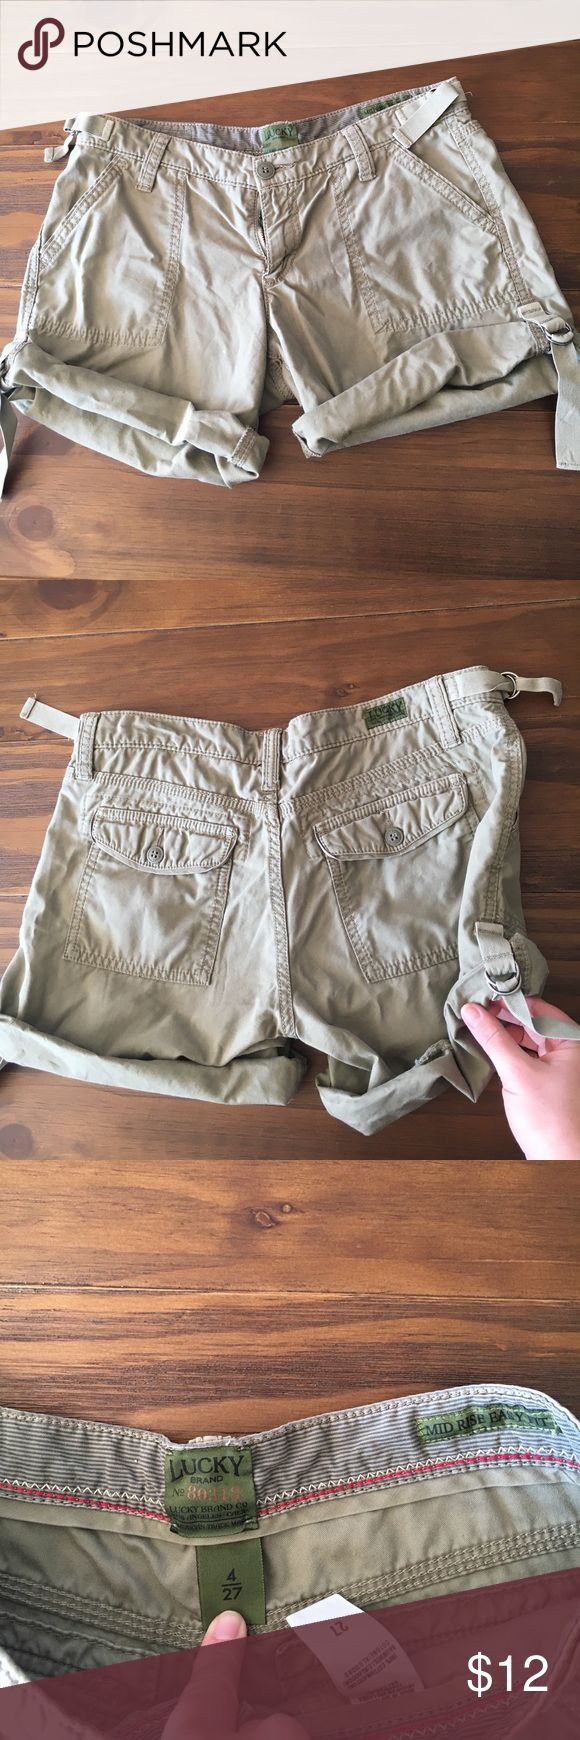 Lucky shorts Really cool army shorts! Has a lot of flare! Great condition, only thing I will say is it has a teeny tiny bleach dot on it. It's so tiny you can't see in the pic (or when wearing them) but I zoomed in so you could see. I already discounted price anyway. 😊 Lucky Brand Shorts